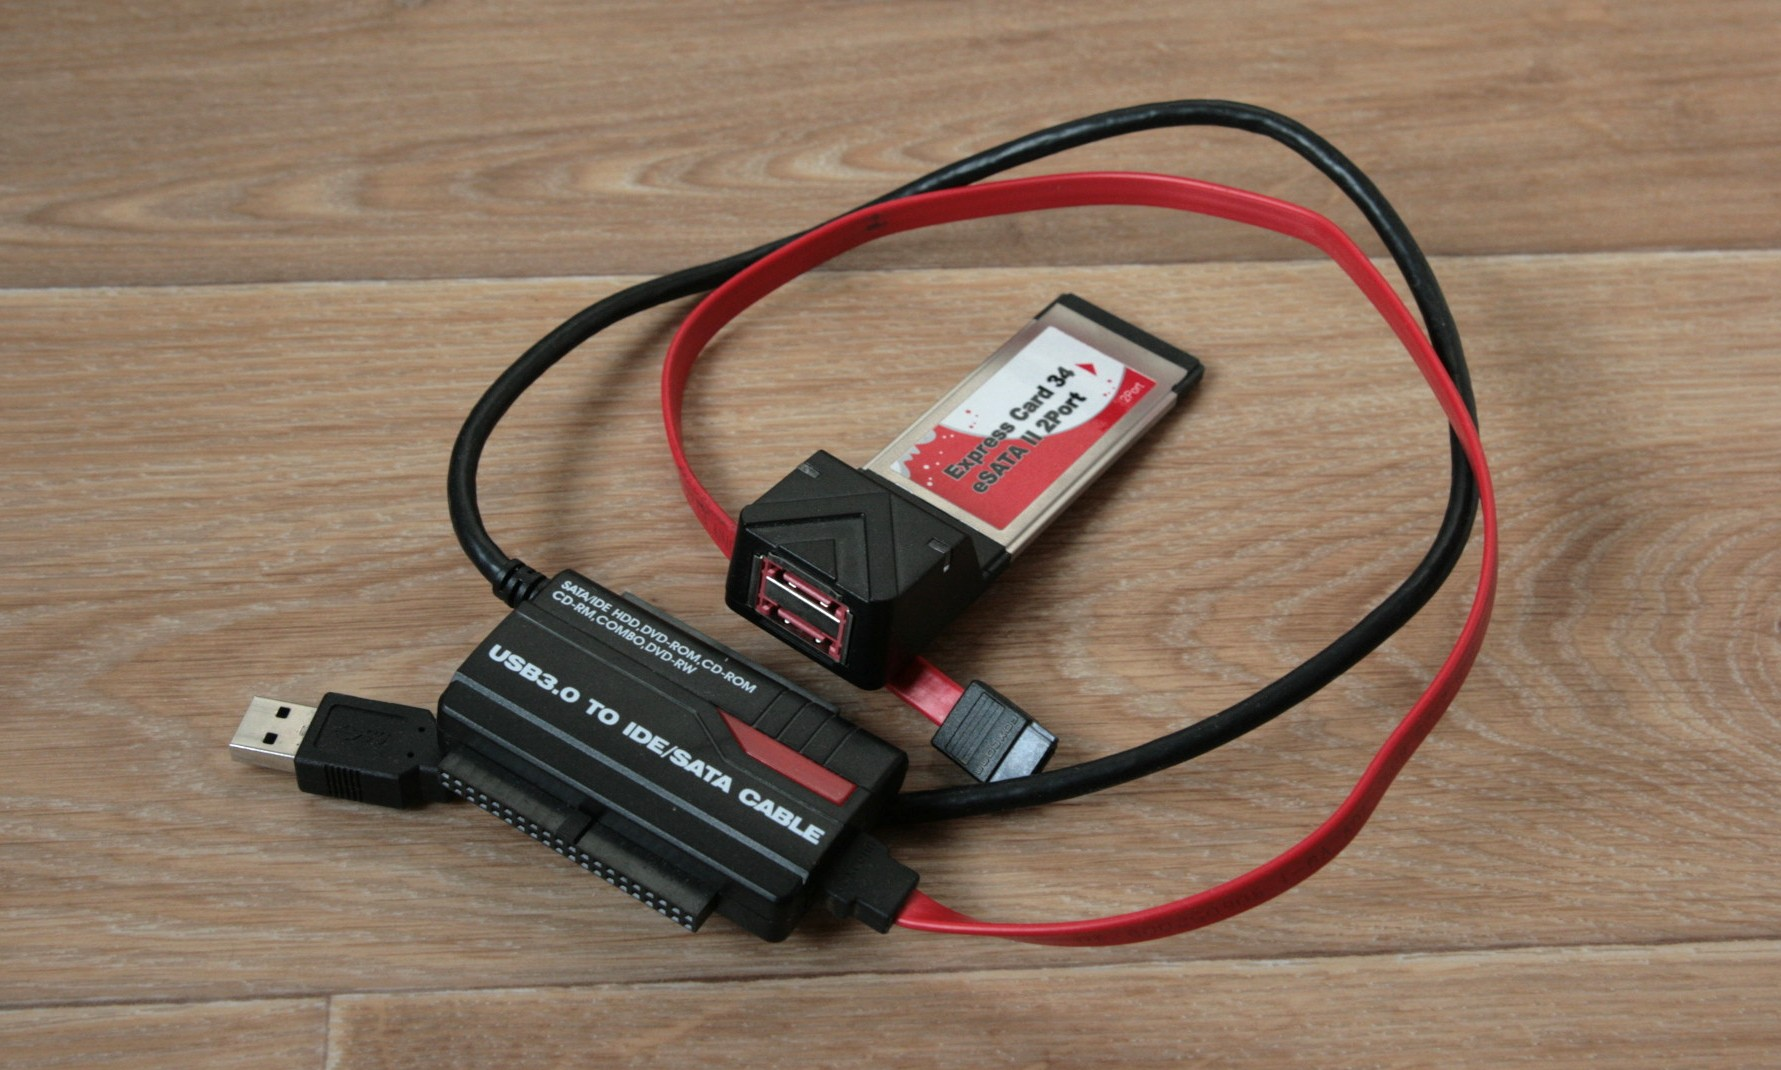 USB to SATA/IDE and ExpressCard to SATA adapters